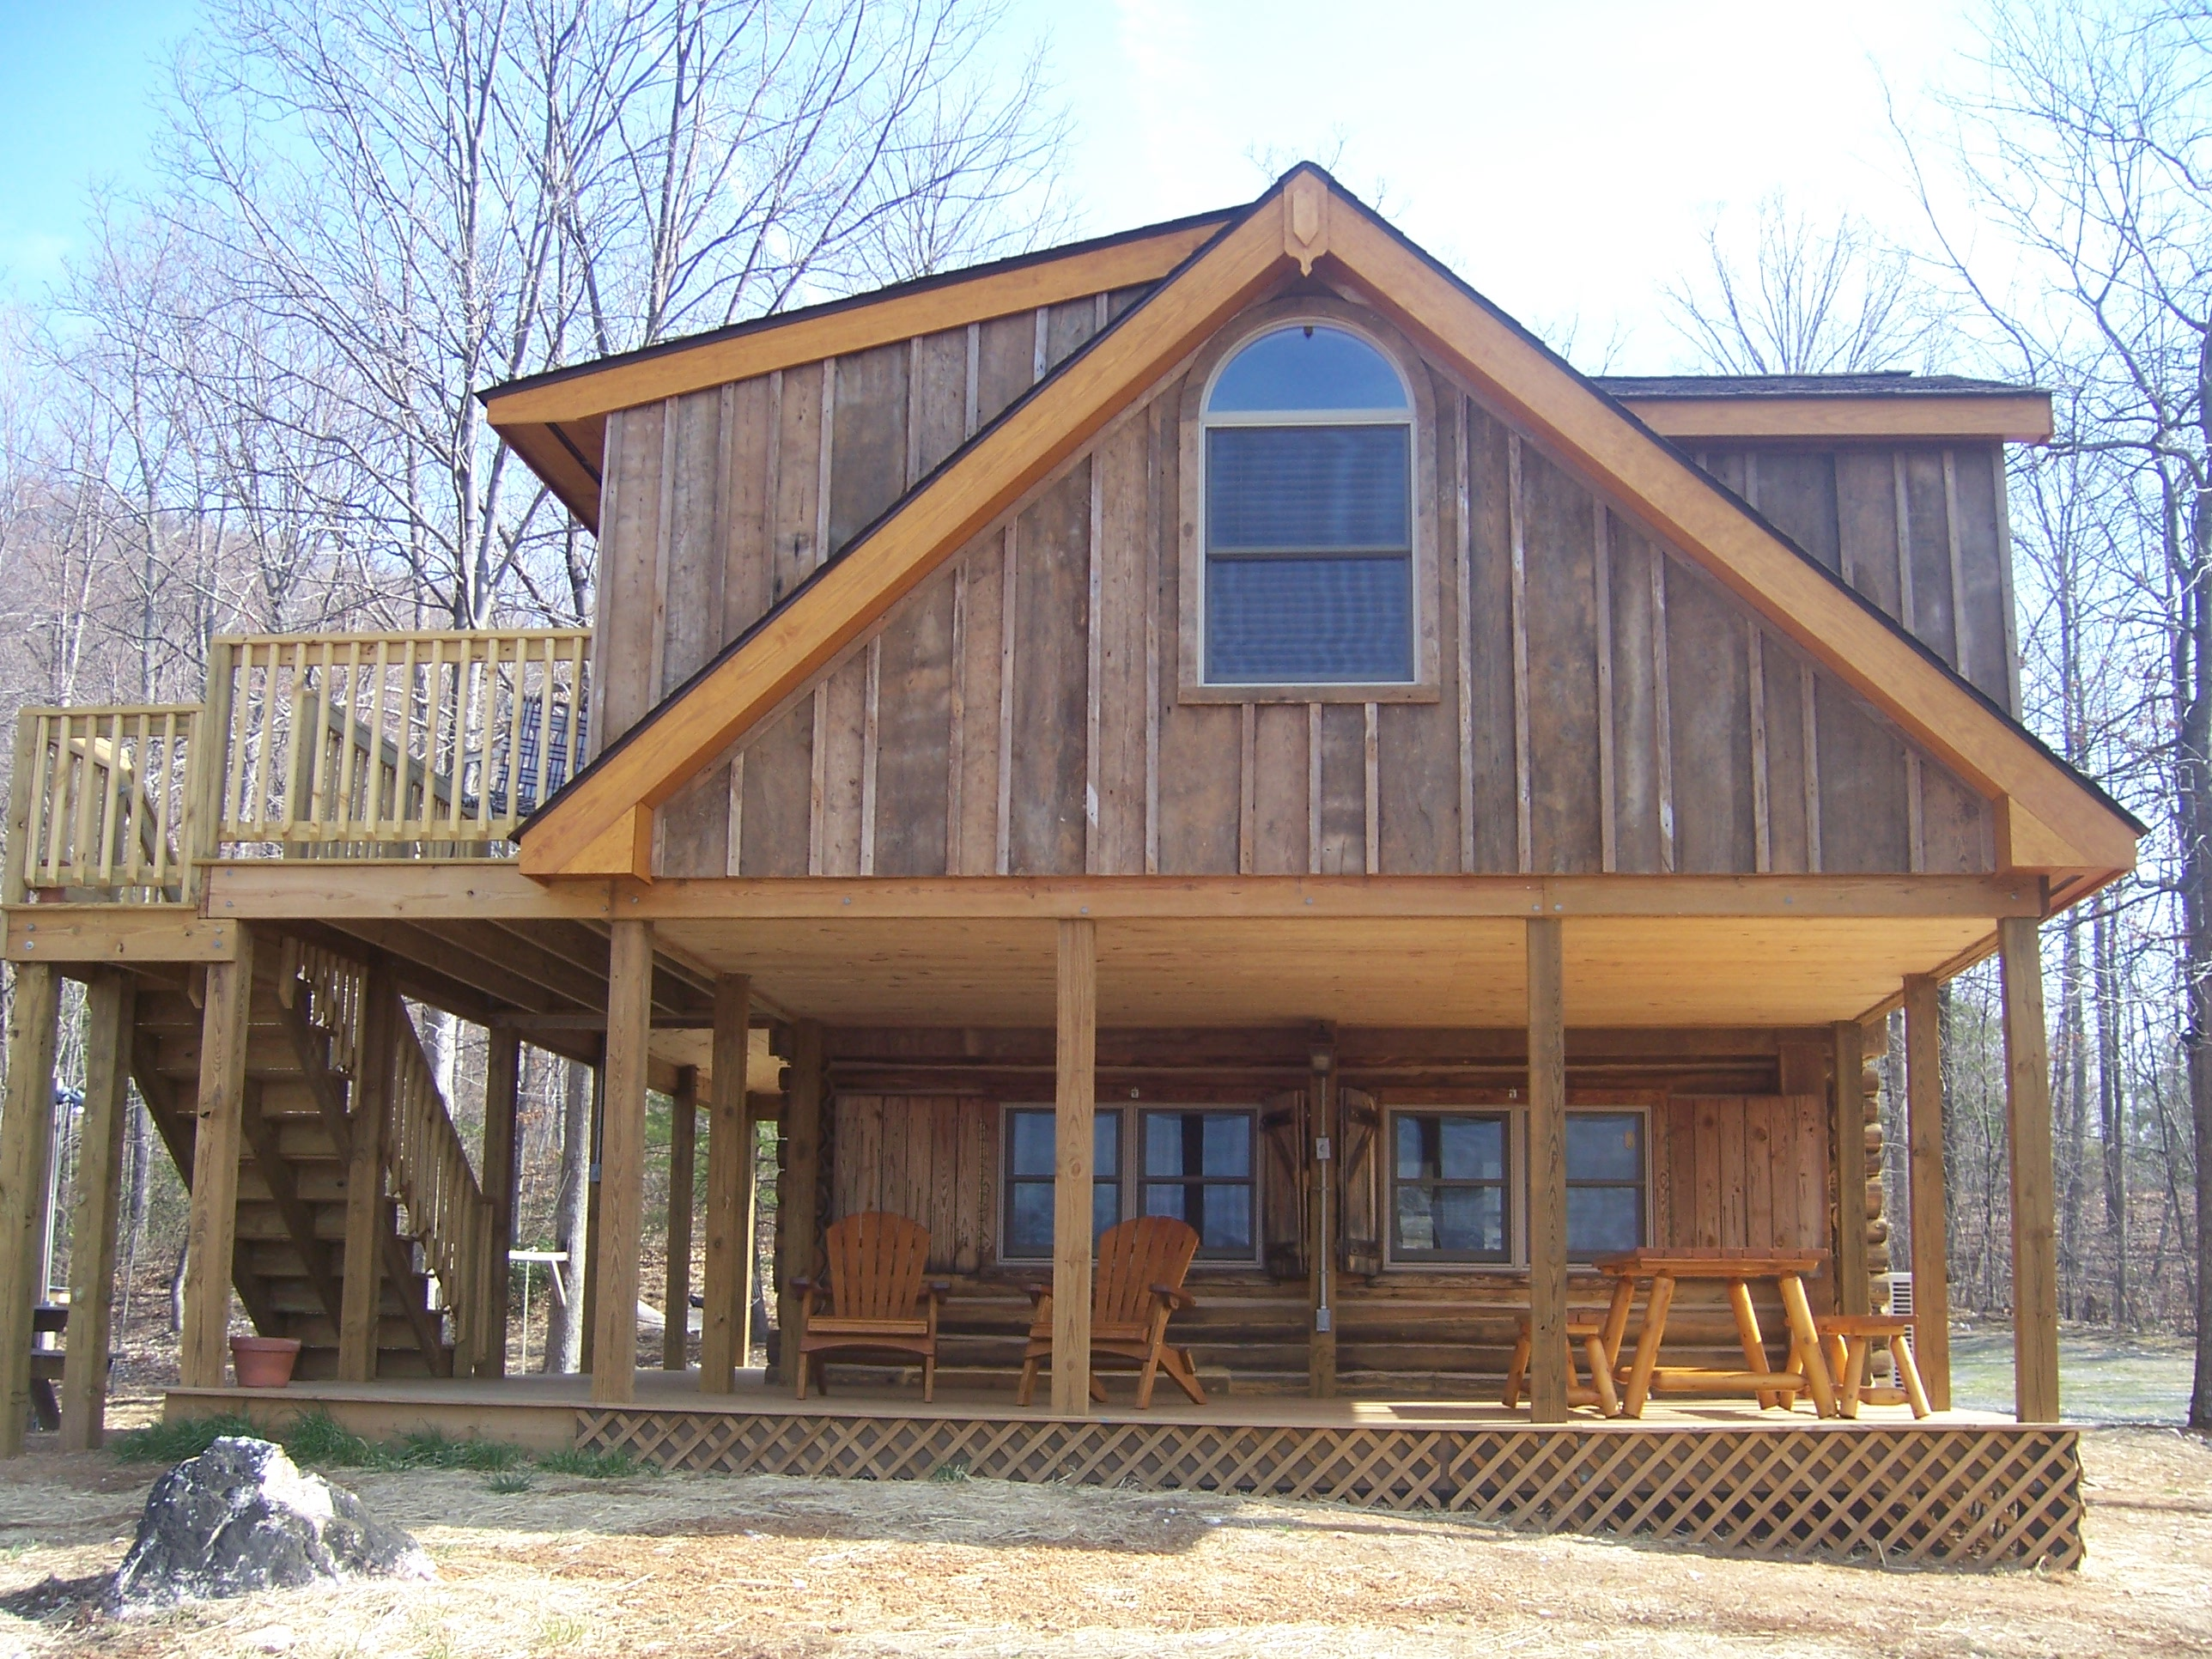 shenandoah interesting nrgp cabin cabins log pin pinterest valley rentals outside